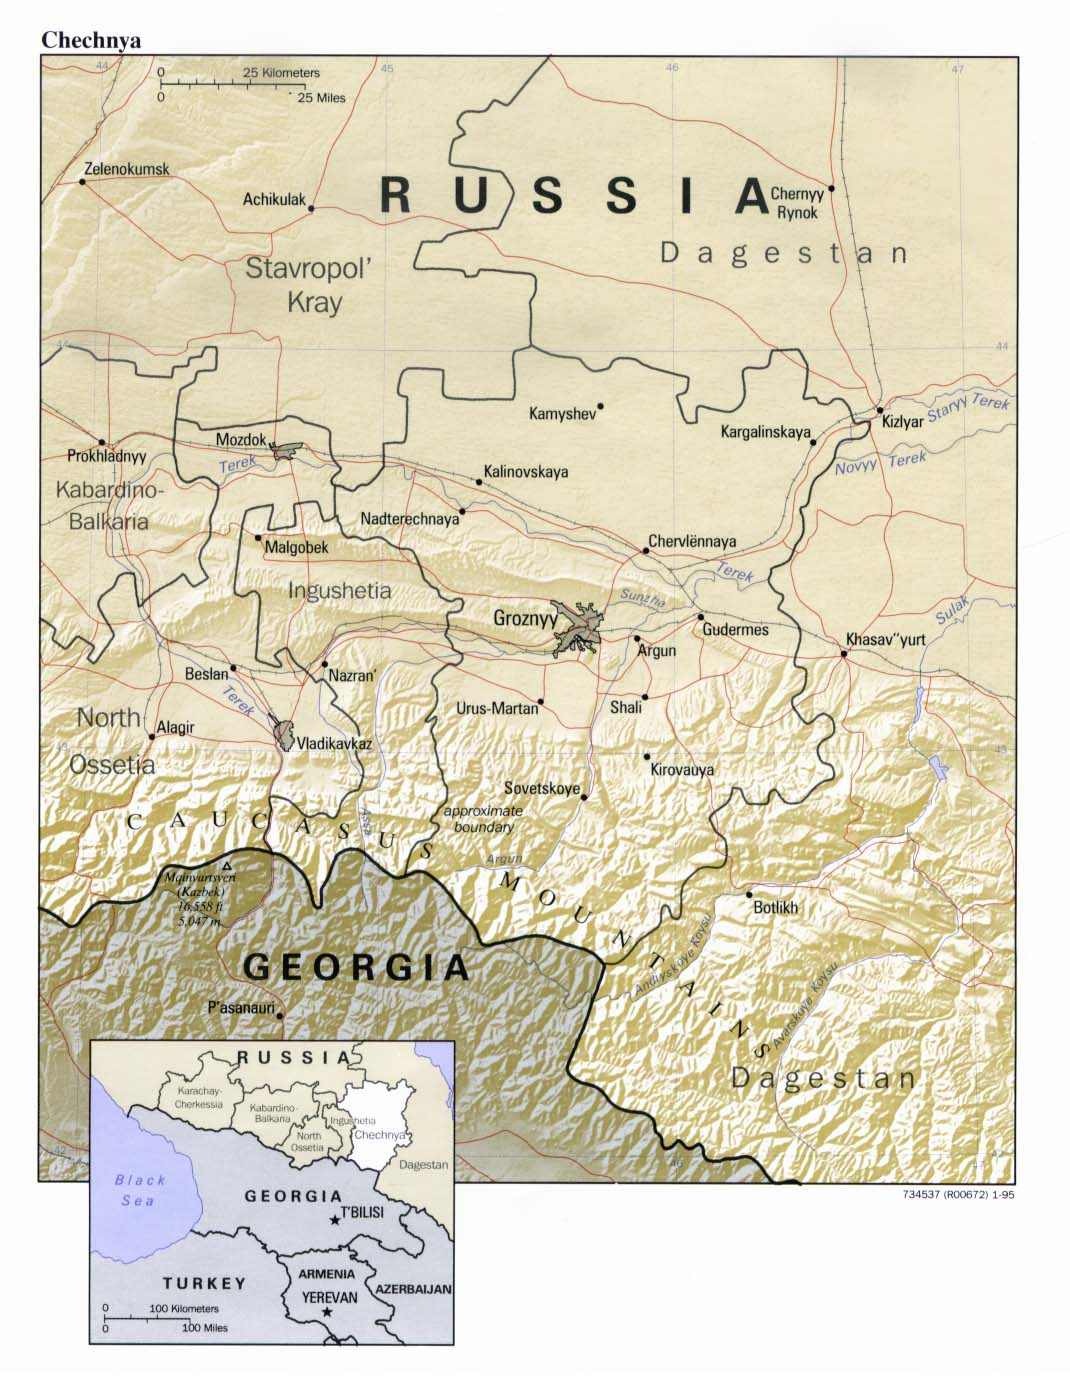 Chechnya Shaded Relief Map, Russia